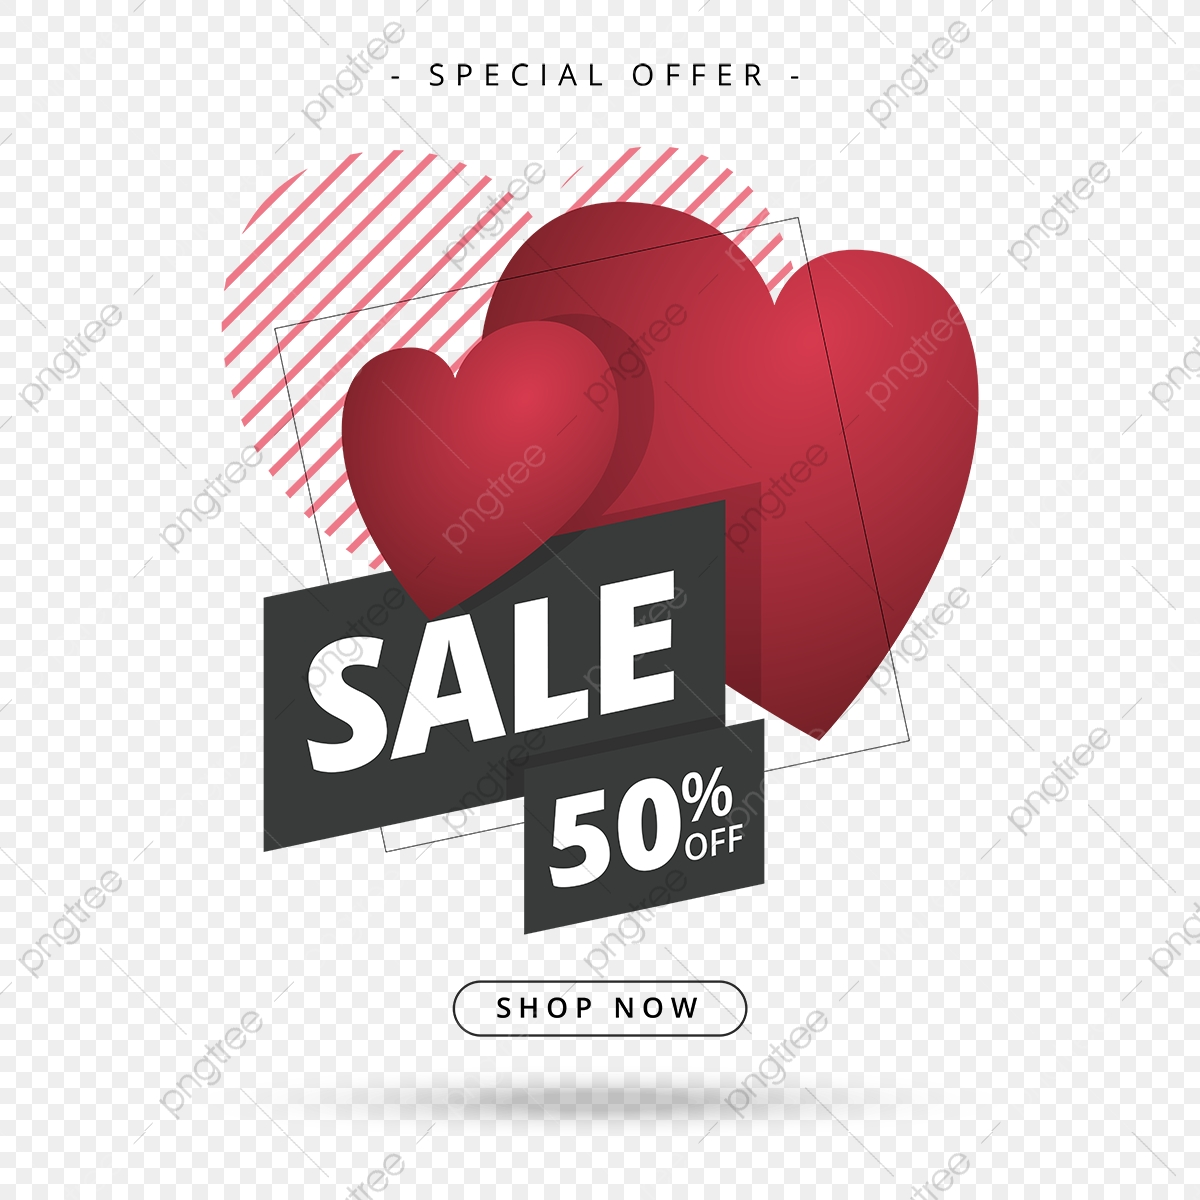 Valentines Day Sale Vector Design With Elegant Heart Line Shadow And Border Style Love Valentine Heart Png And Vector With Transparent Background For Free Download